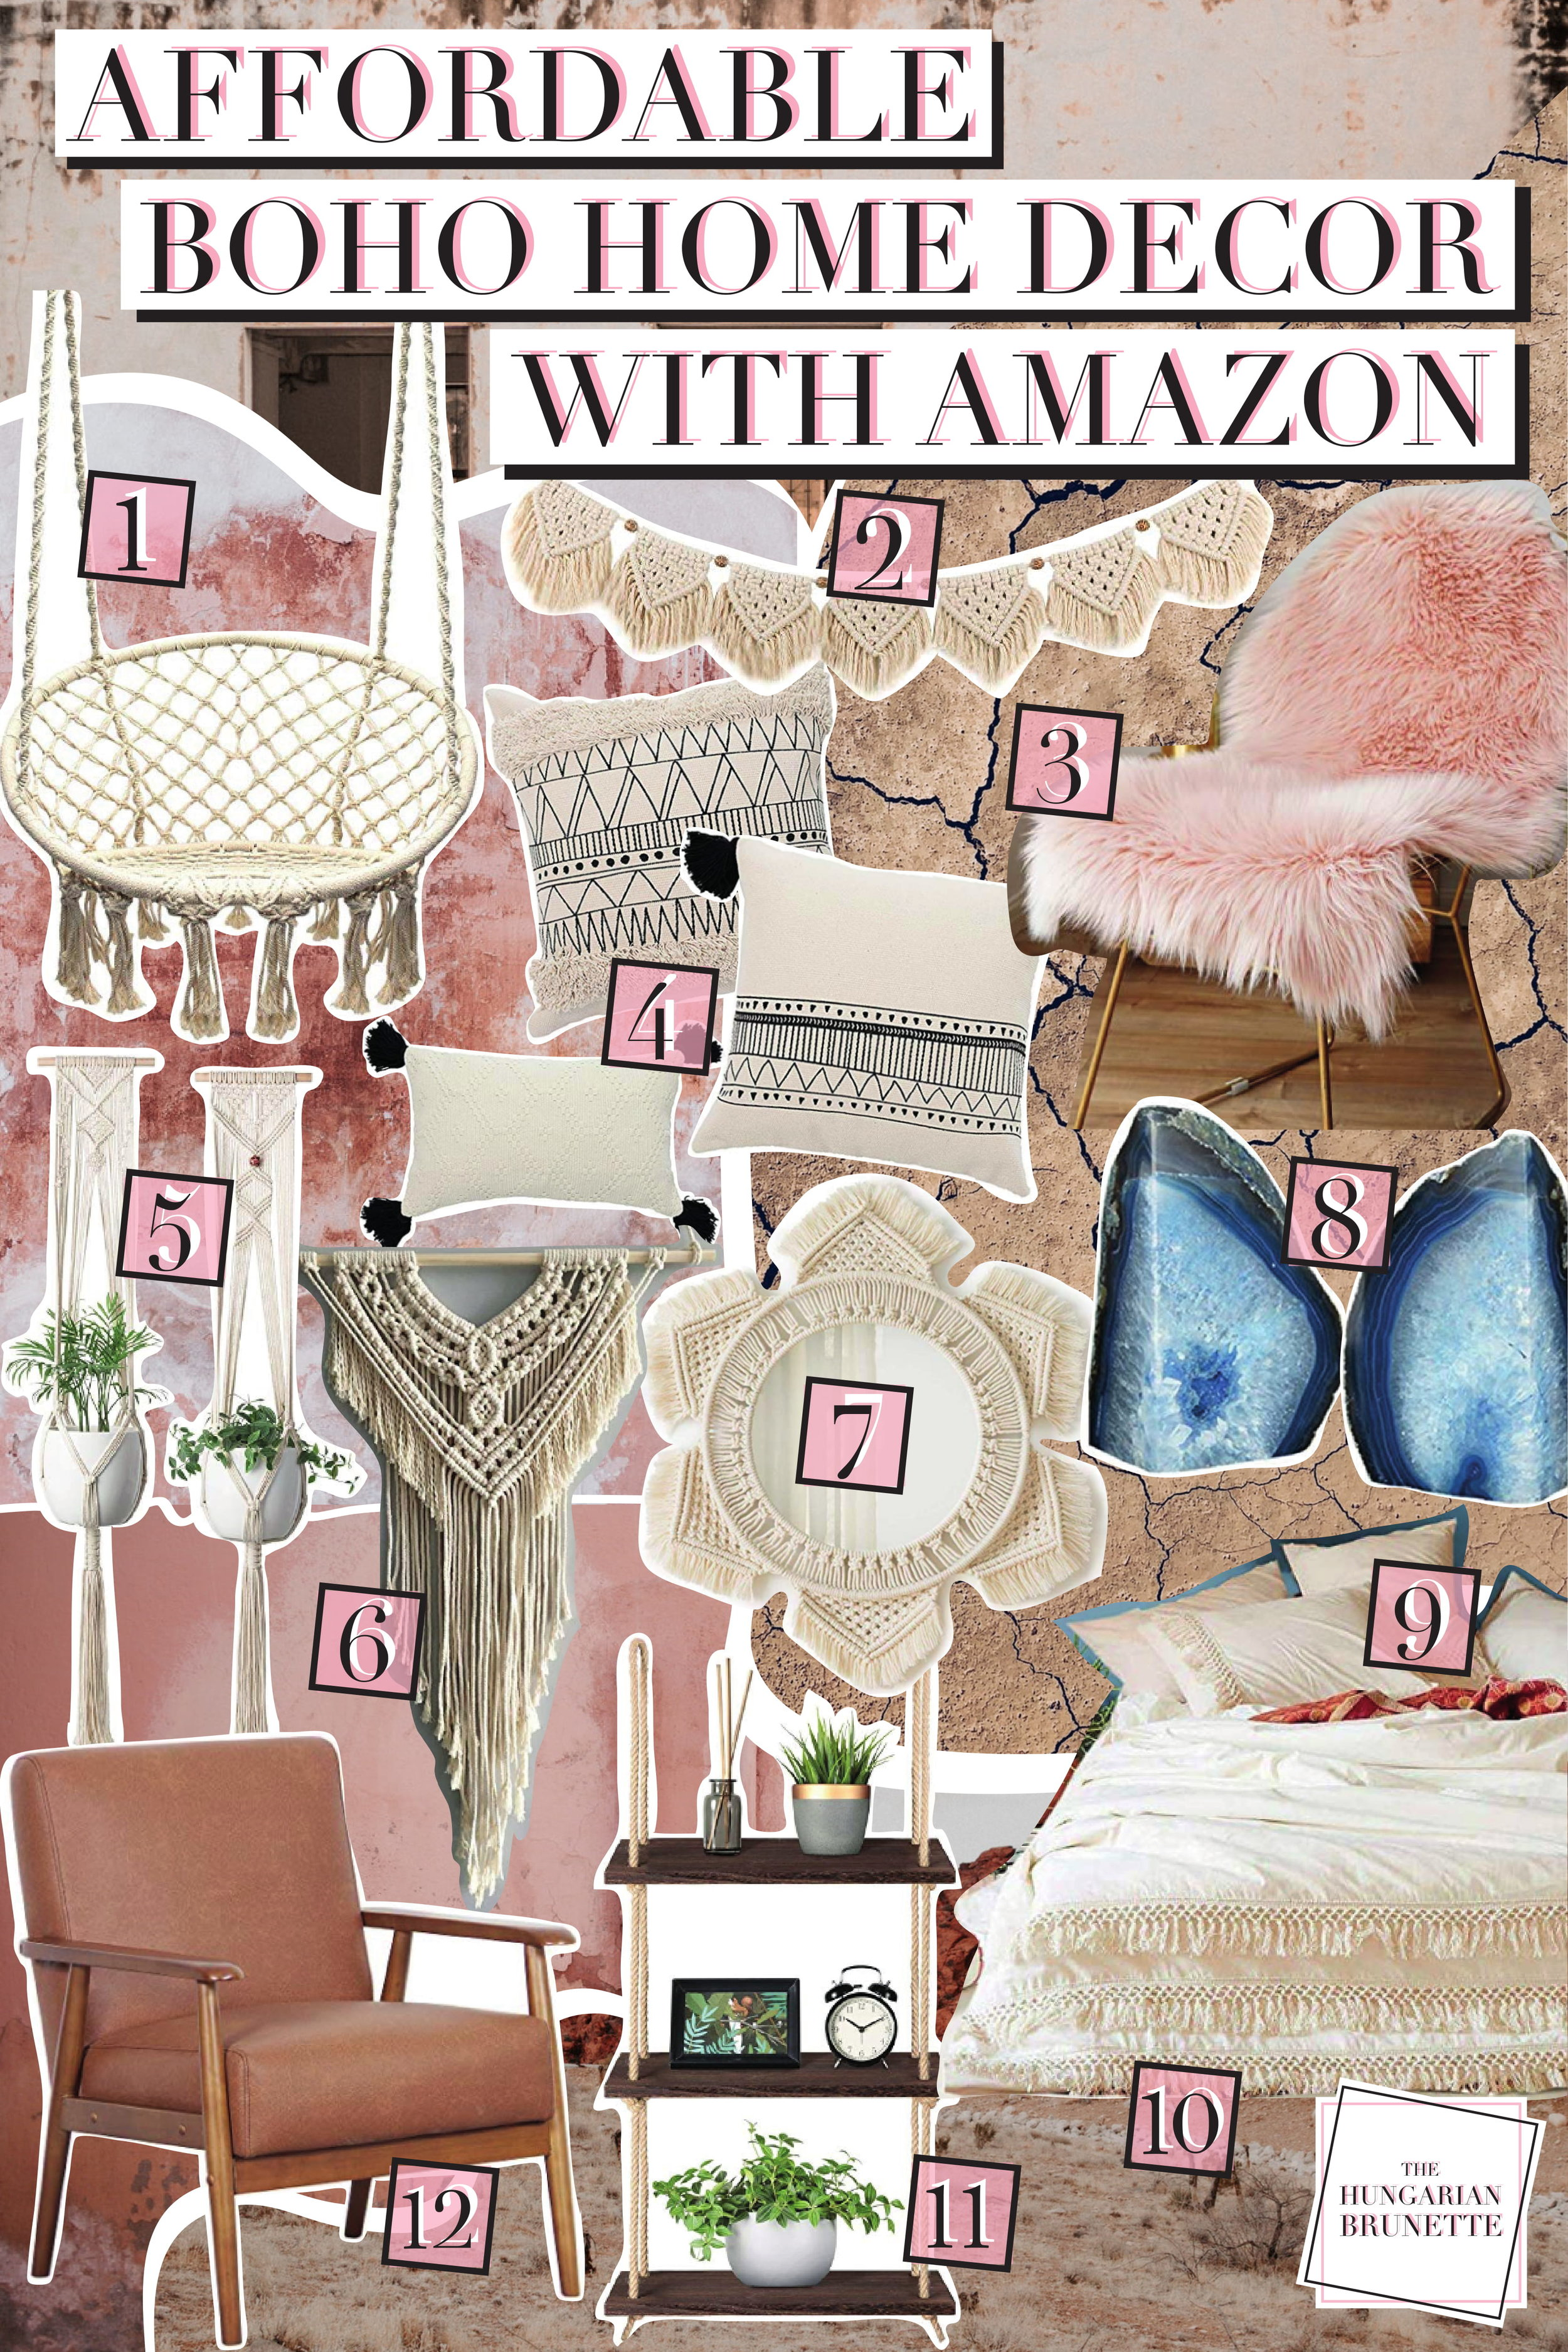 THE HUNGARIAN BRUNETTE AFFORDABLE BOHO HOME DECOR WITH AMAZON